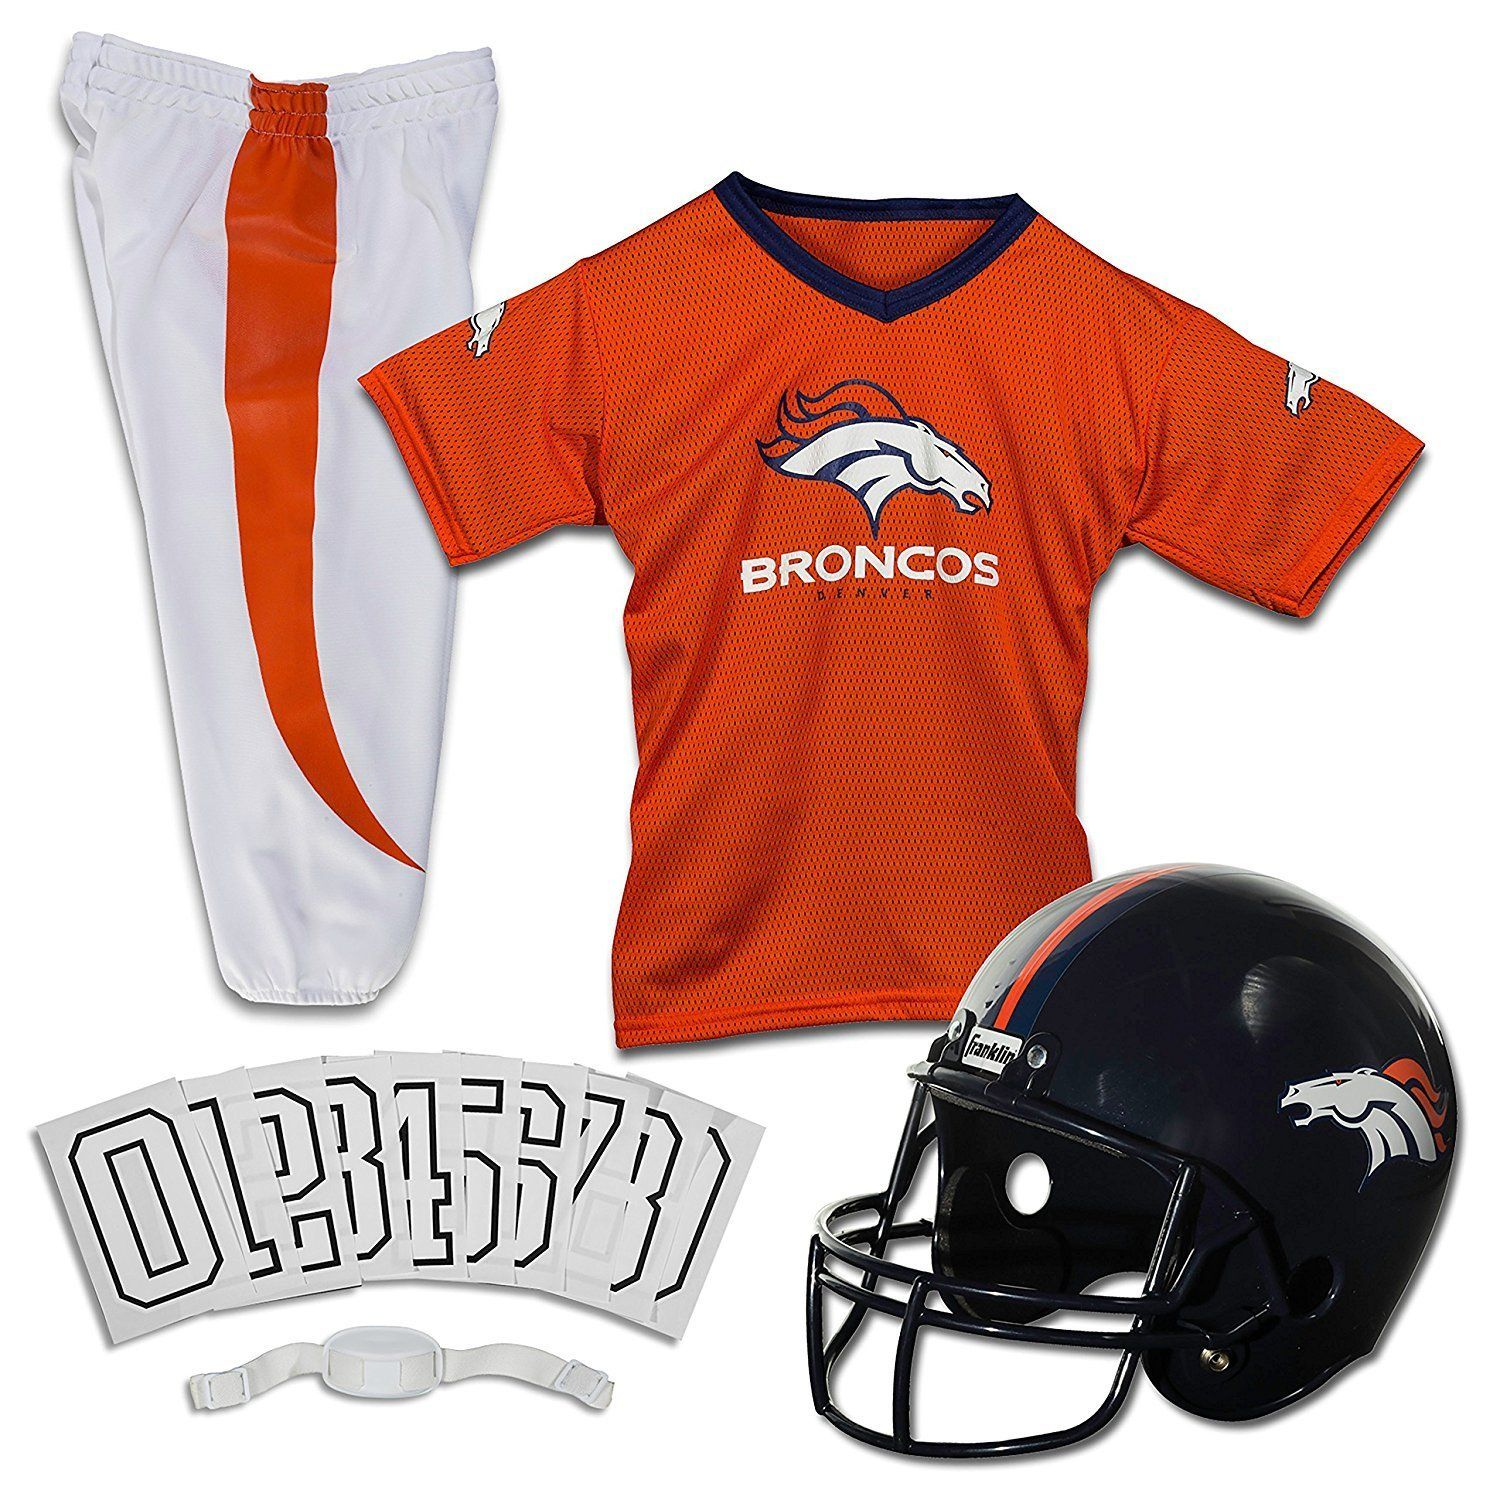 compare prices on denver broncos youth uniforms and other denver broncos halloween gear save money on broncos youth uniforms by viewing results from top